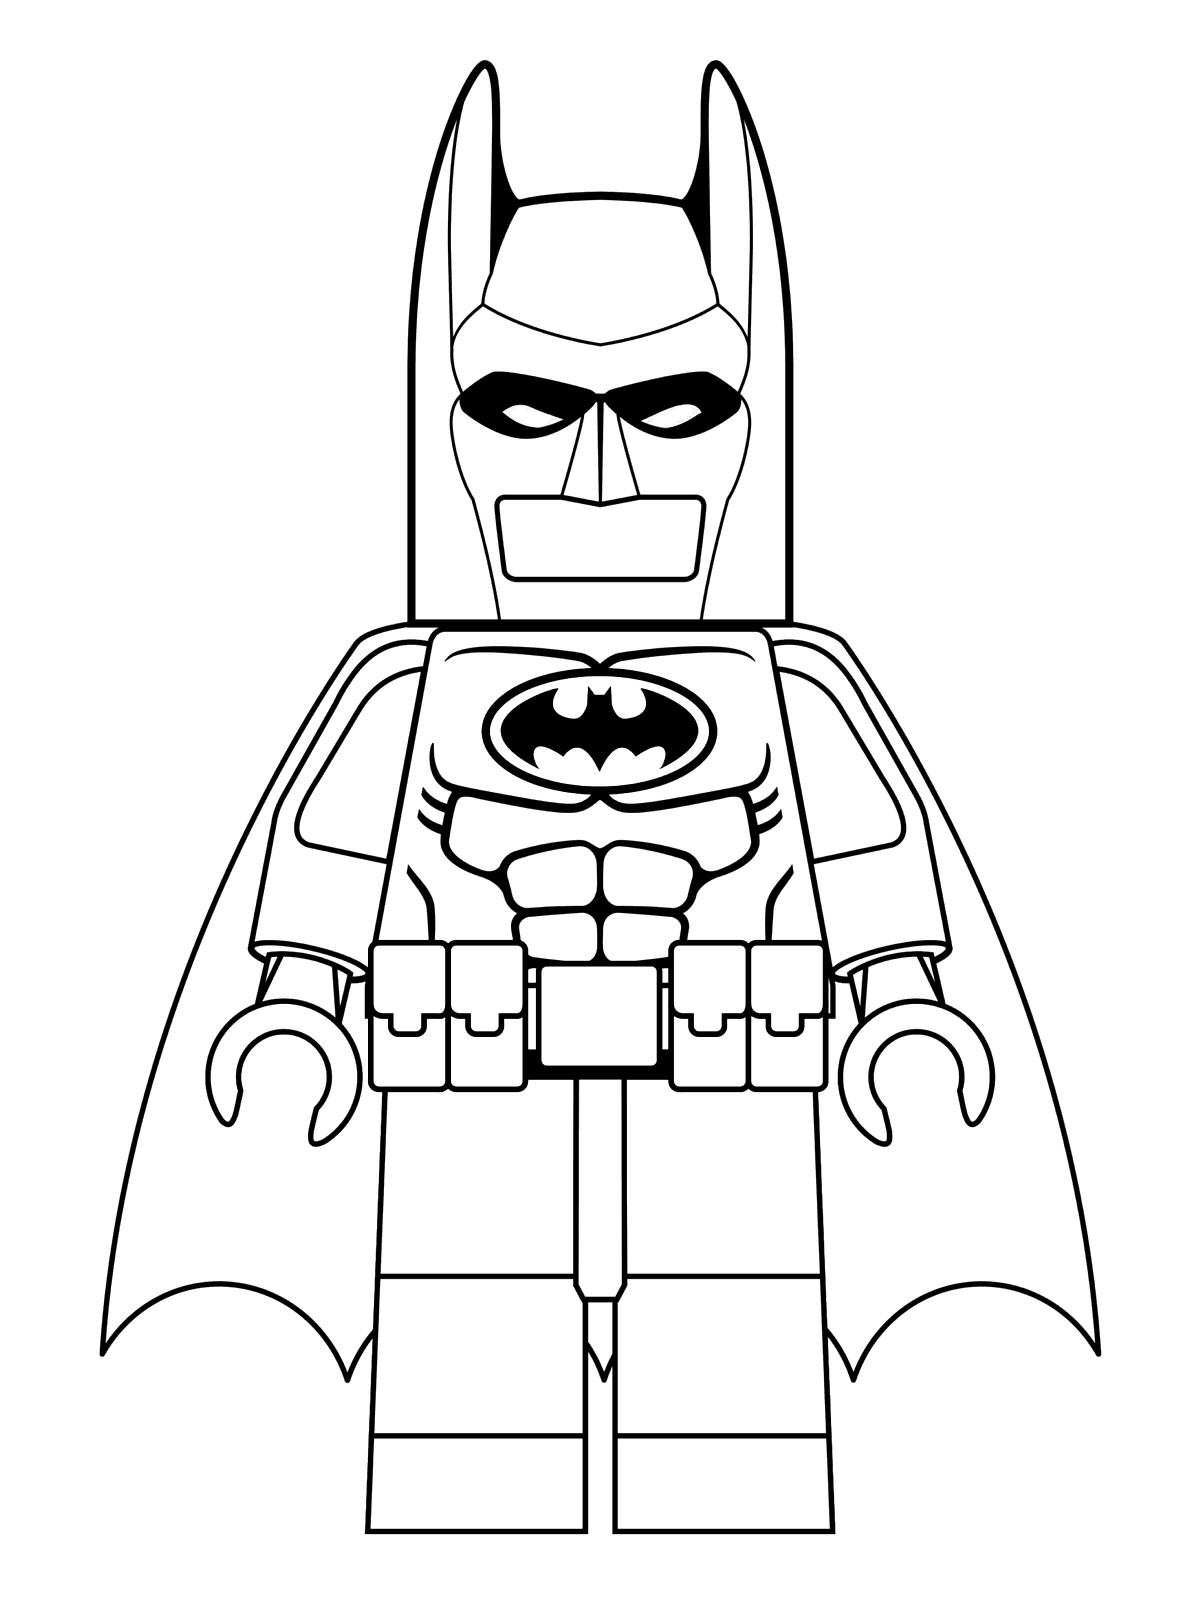 Batman Lego Movie Coloring Pages